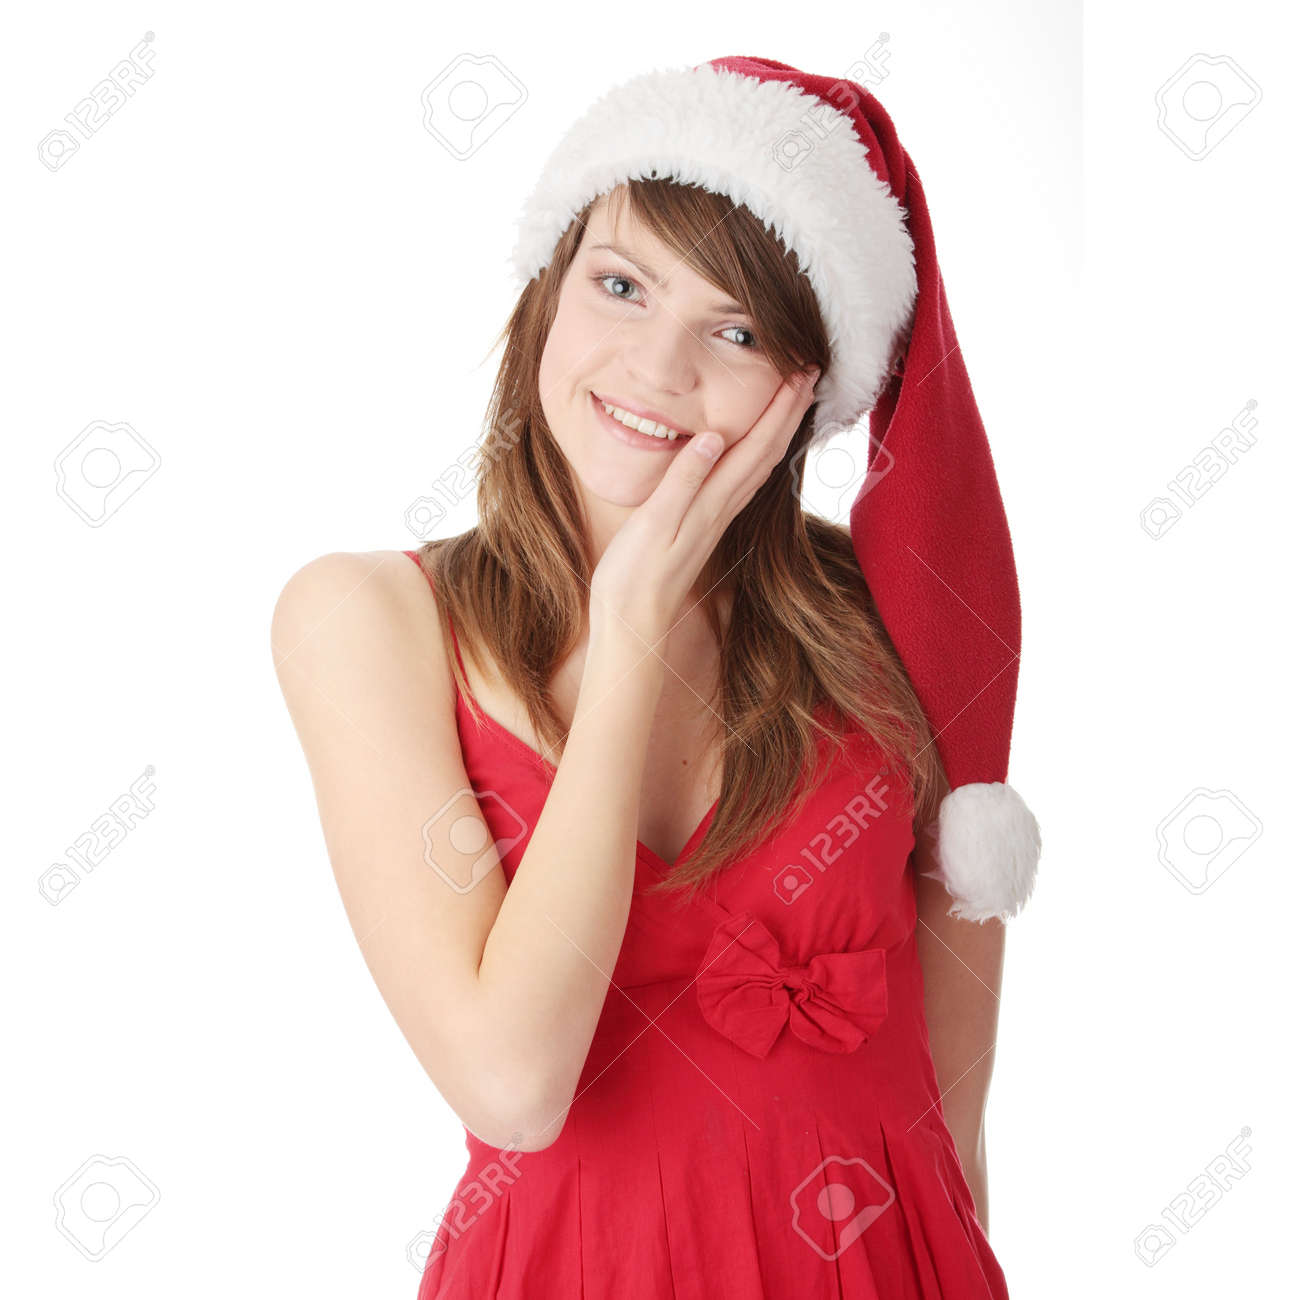 Christmas dress teen - Portrait Of Pretty Christmas Teen Girl In Red Dress And Santa Hat Smiling Isolated On